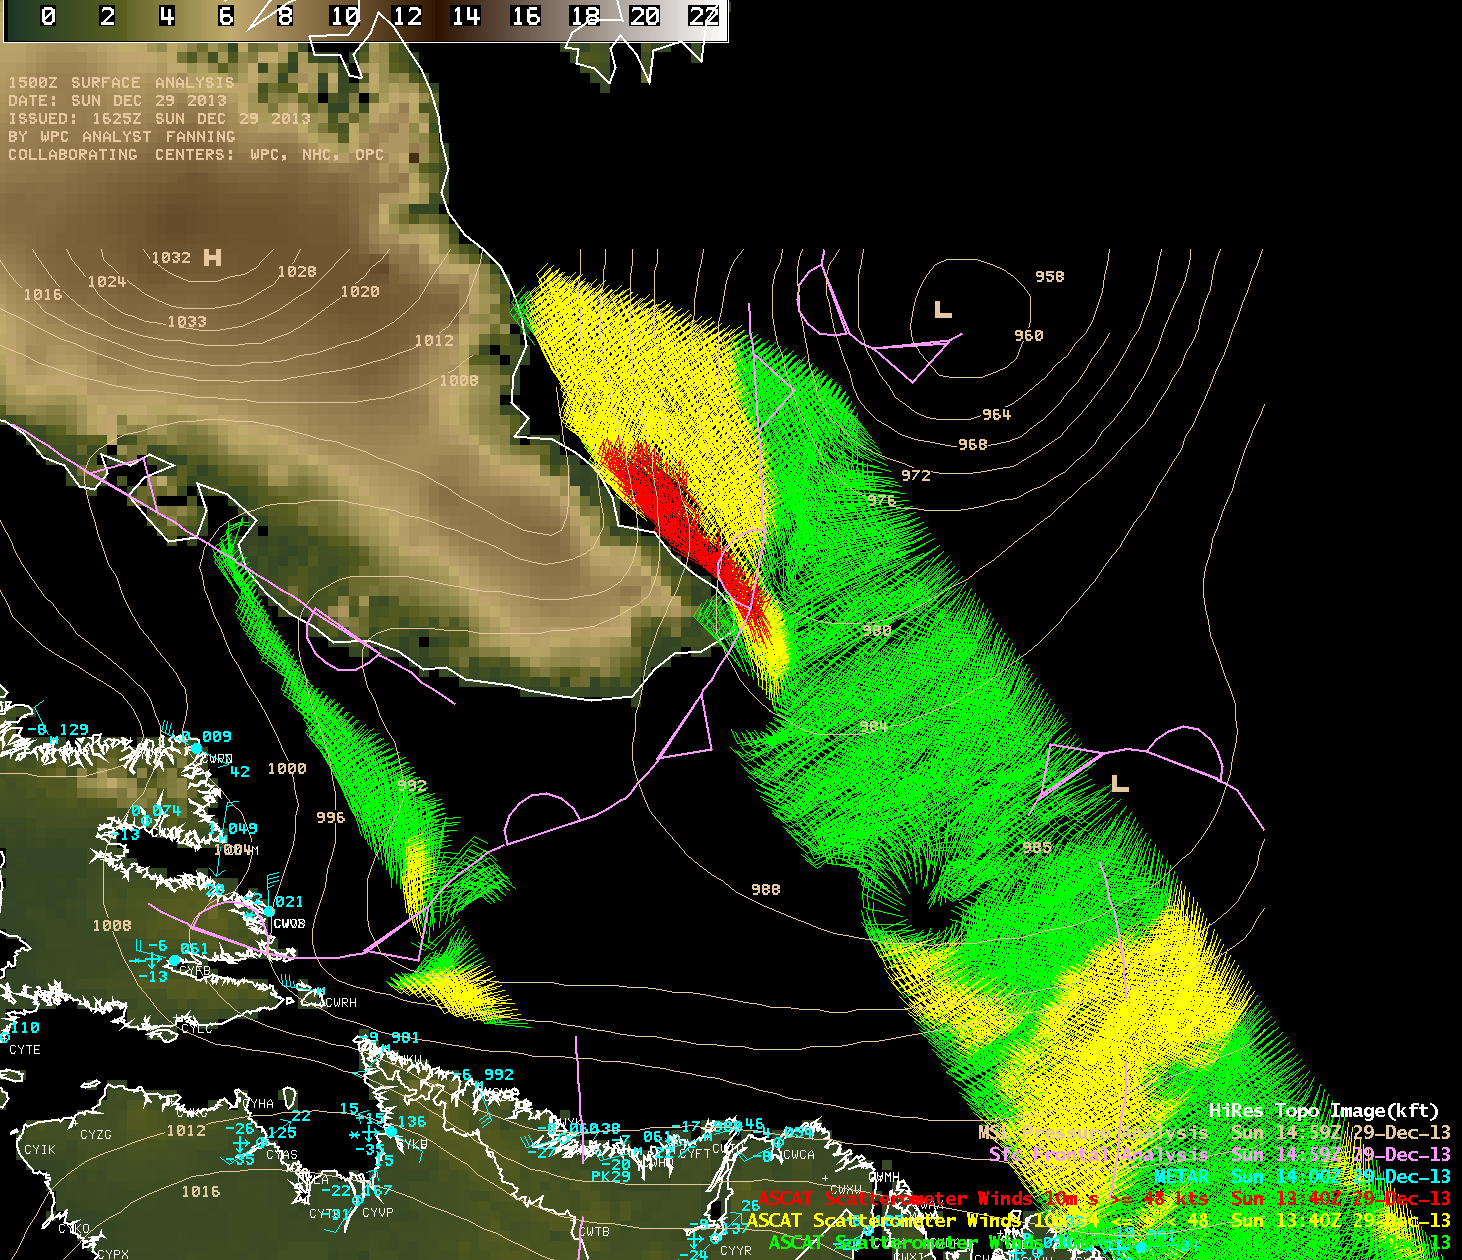 Topography of Greenland, with Metop ASCAT scatterometer winds and surface METAR reports and surface analysis